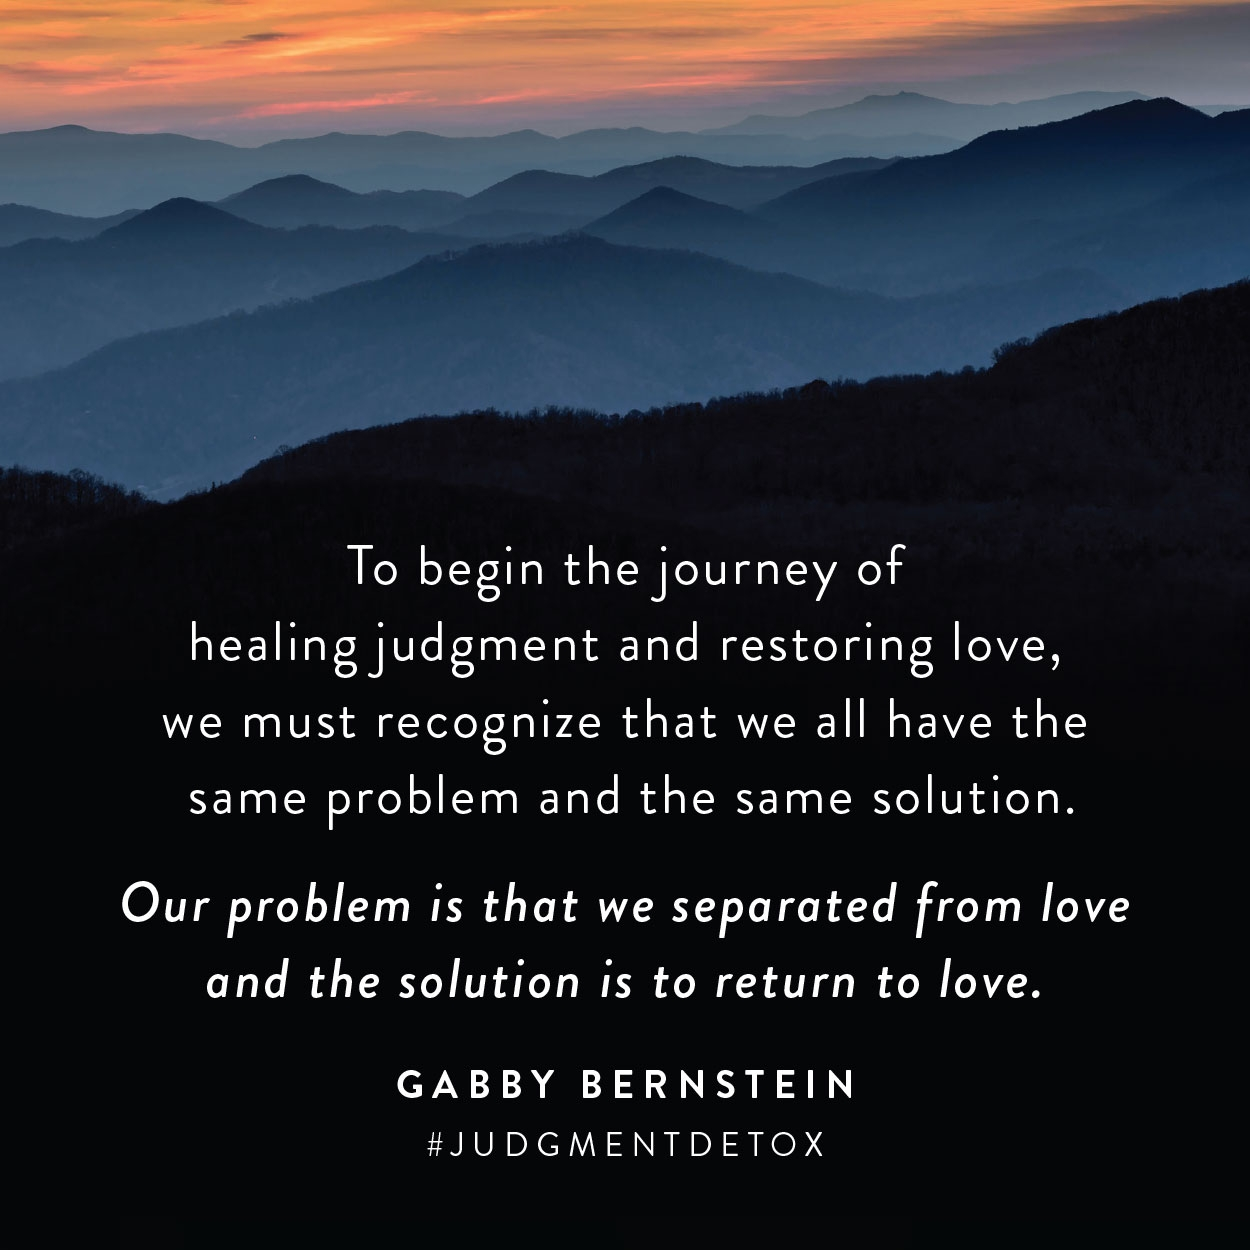 healing judgment quote gabby bernstein judgment detox